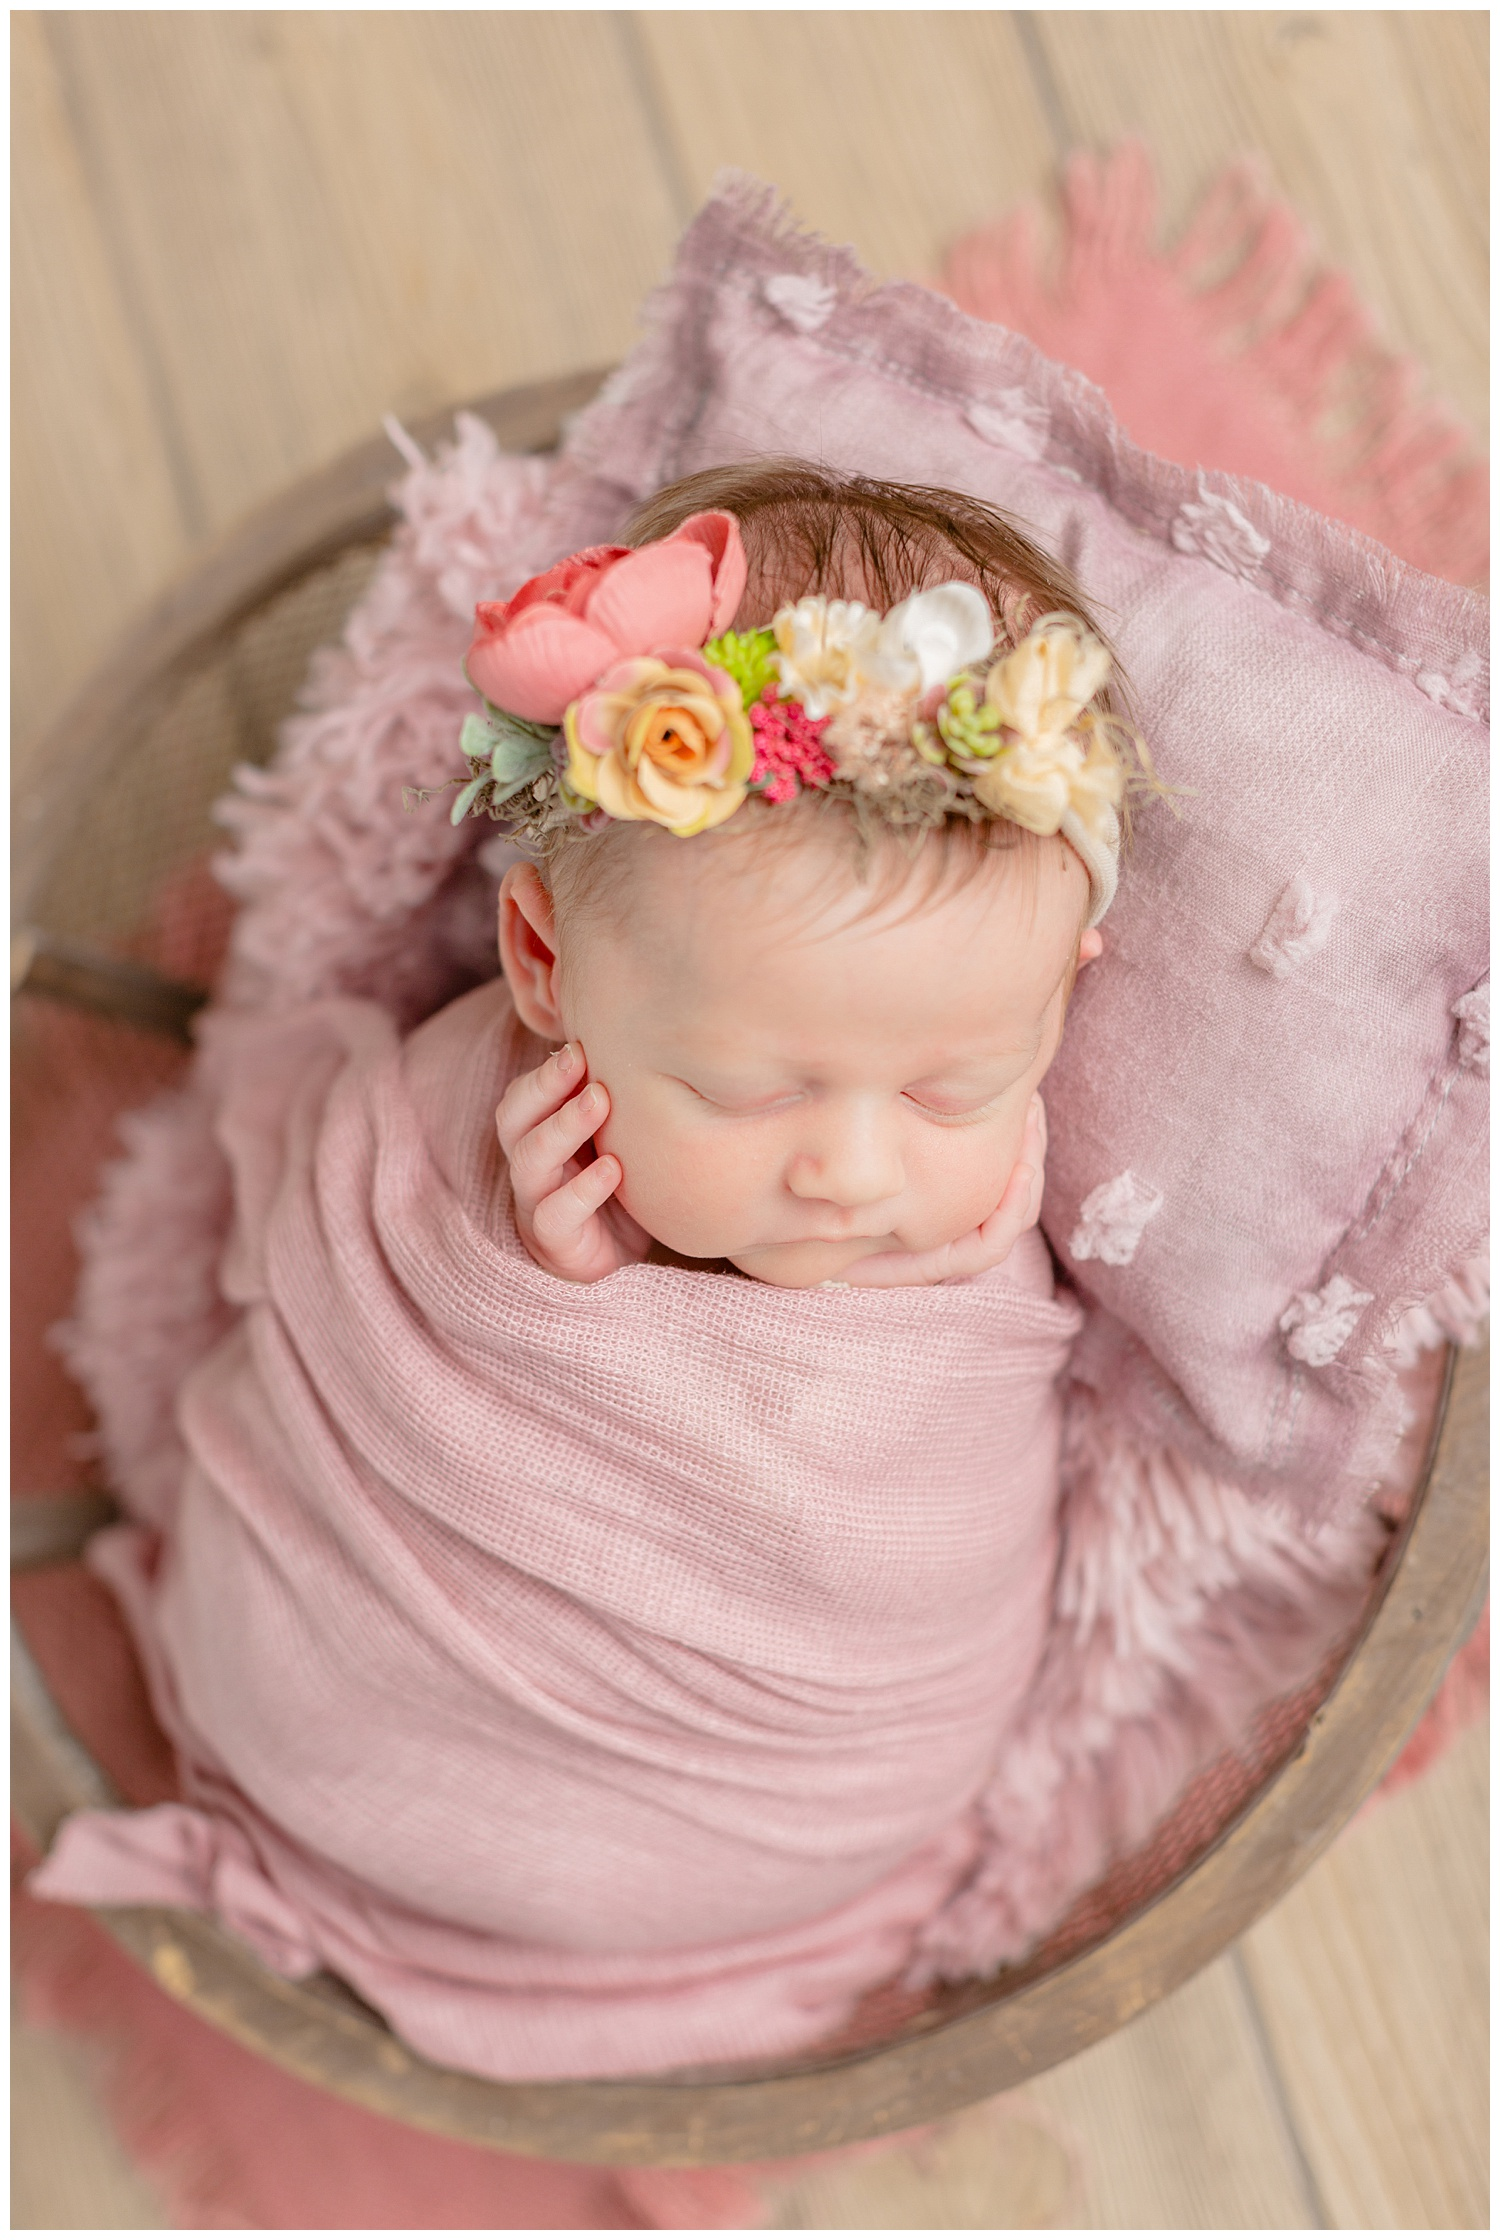 Newborn baby girl wrapped in a mauve colored stretch fabric snuggled in a basket bowl wearing a garden floral headband.   CB Studio